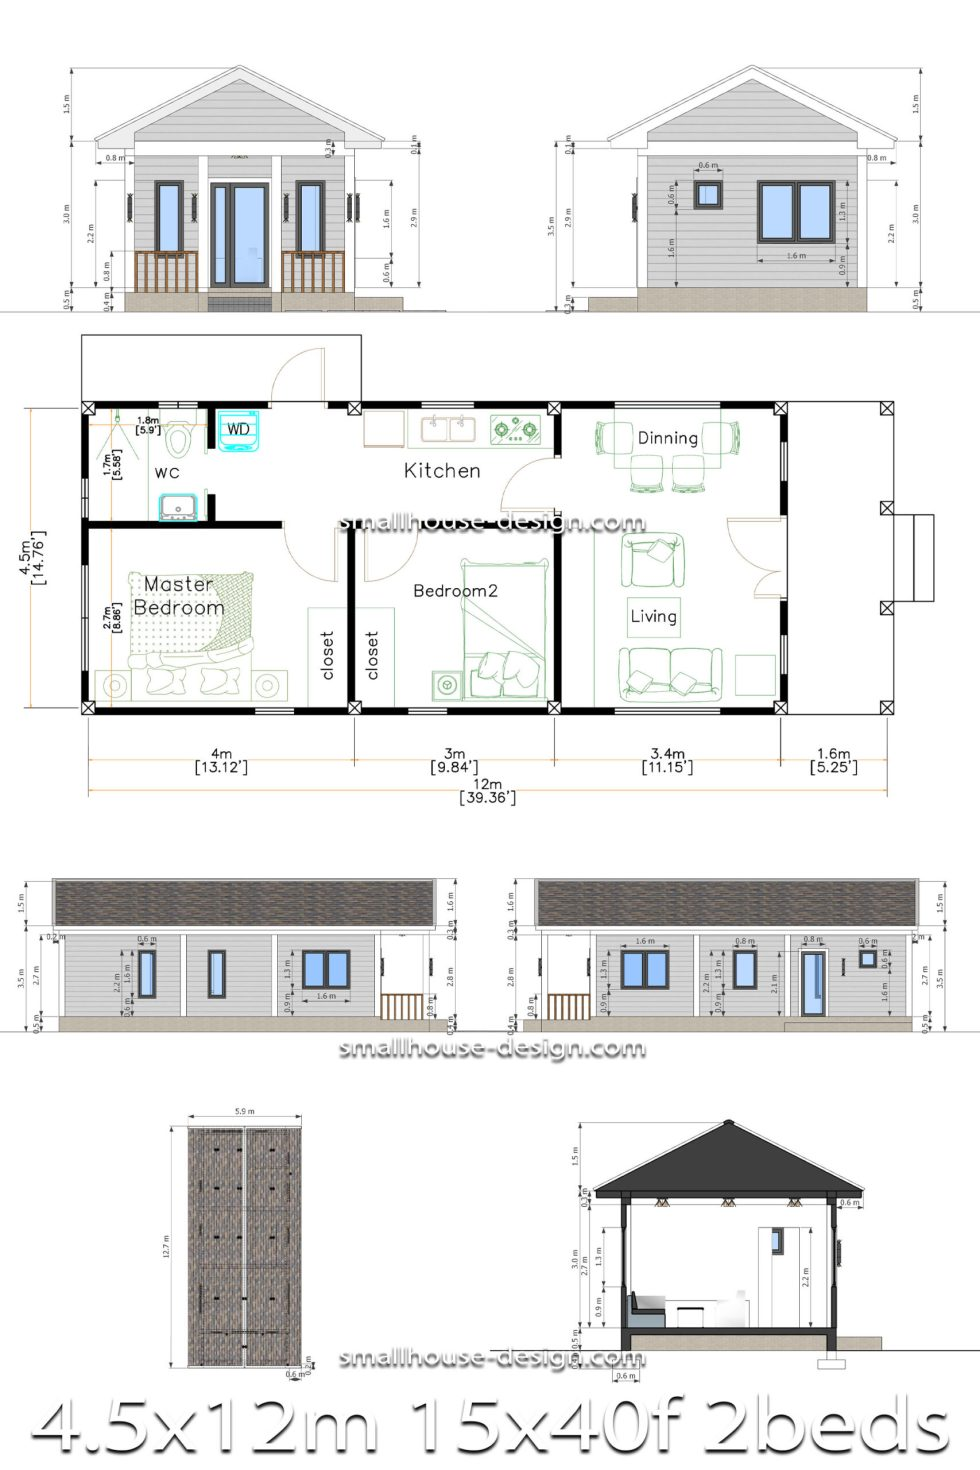 Small House Plans 4.5x12 Meters 2 Beds Gable Roof Style Full detailing